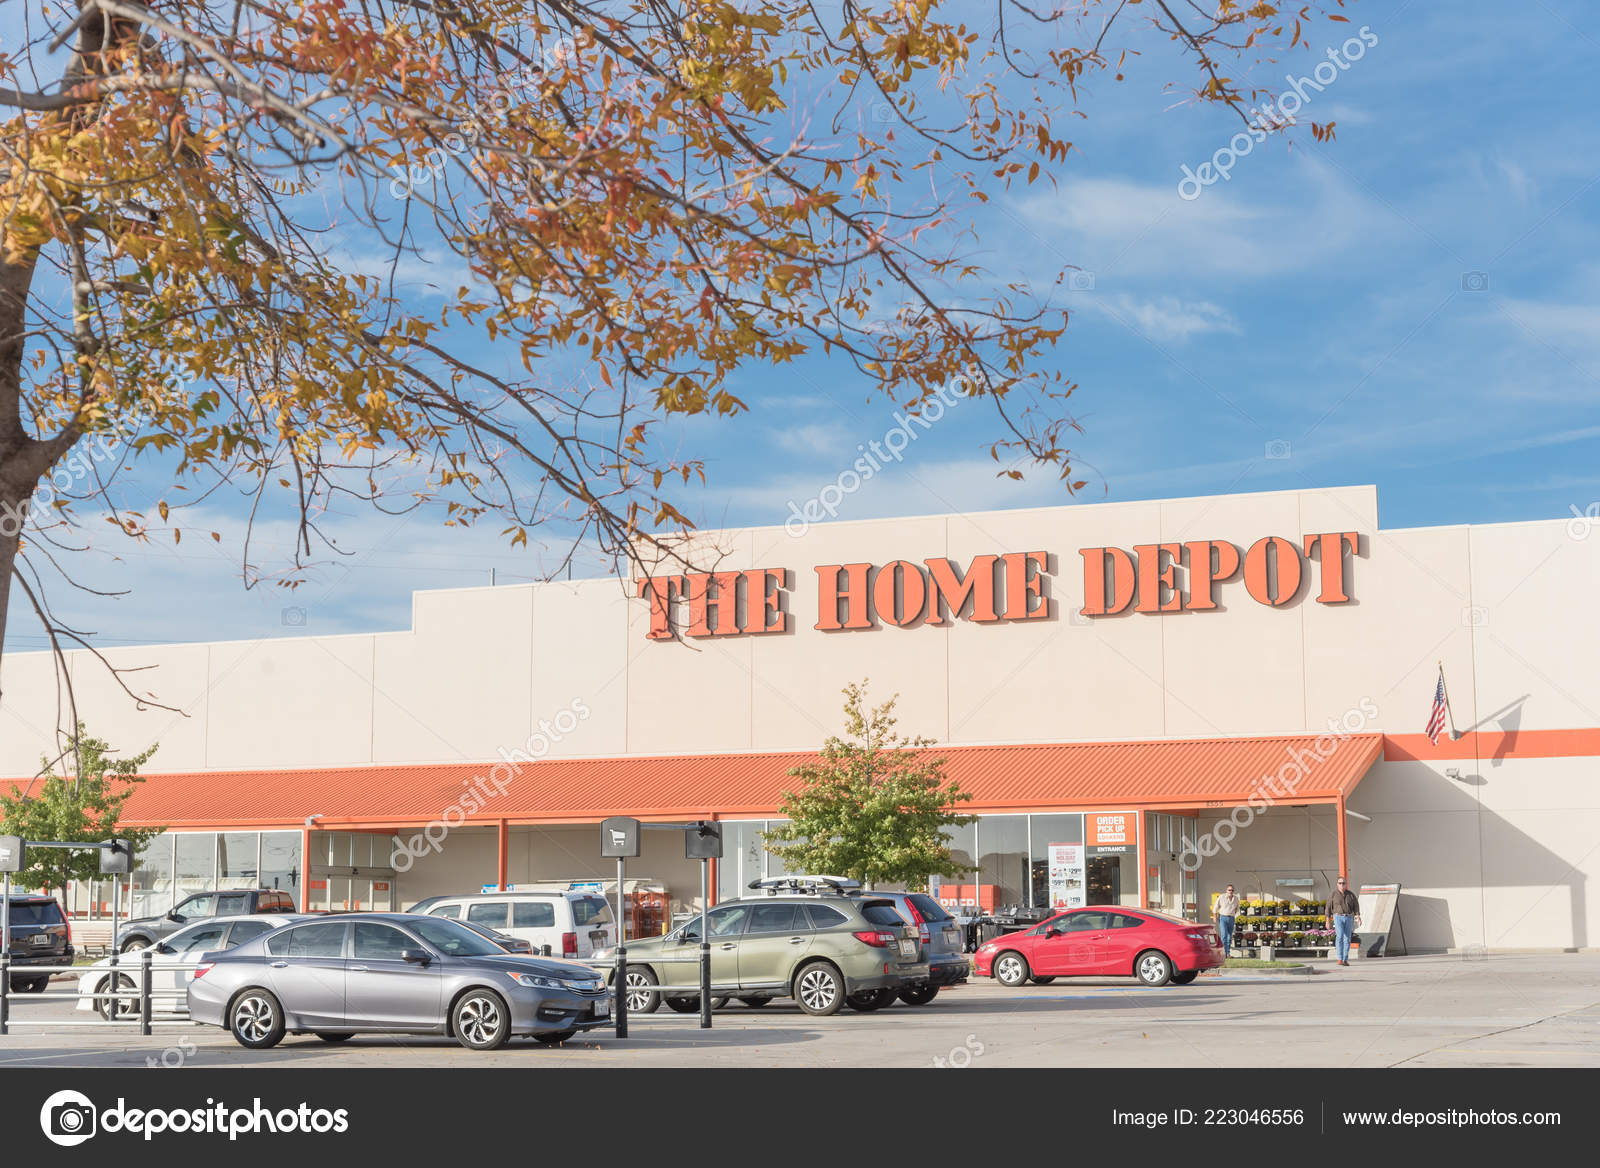 Irving Oct 2018 Home Depot Exterior Storefront Outdoor Parking Lots